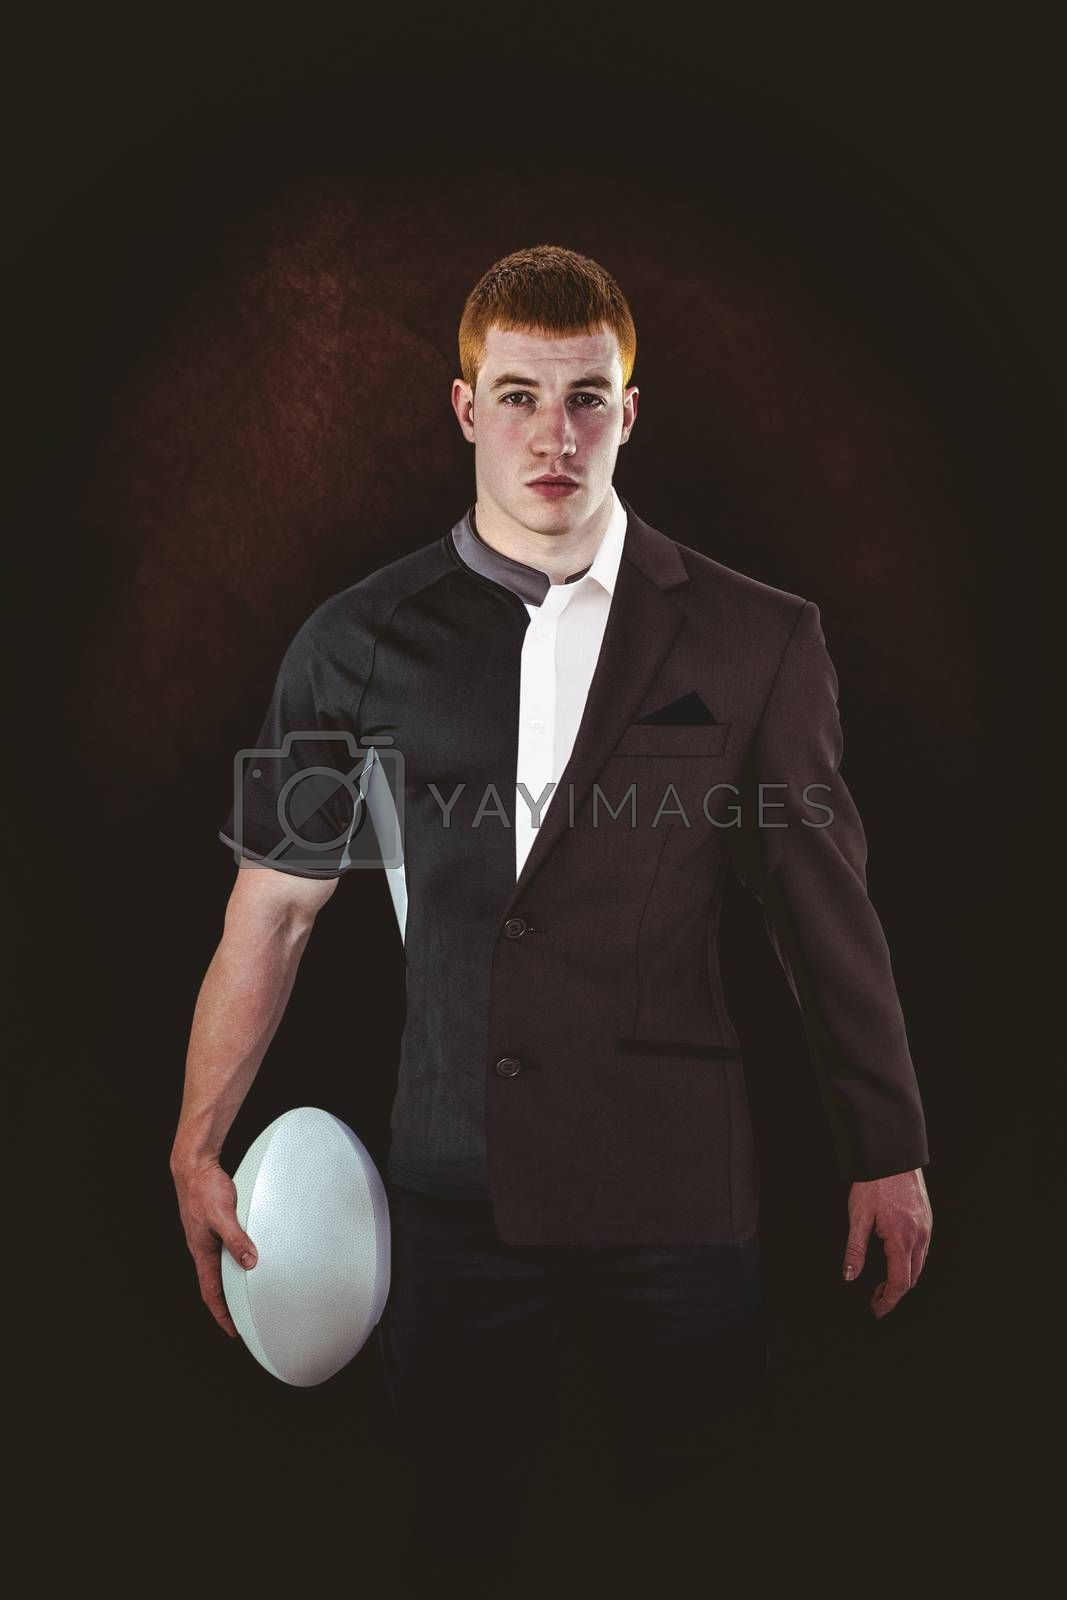 Rugby player holding a rugby ball against half a suit